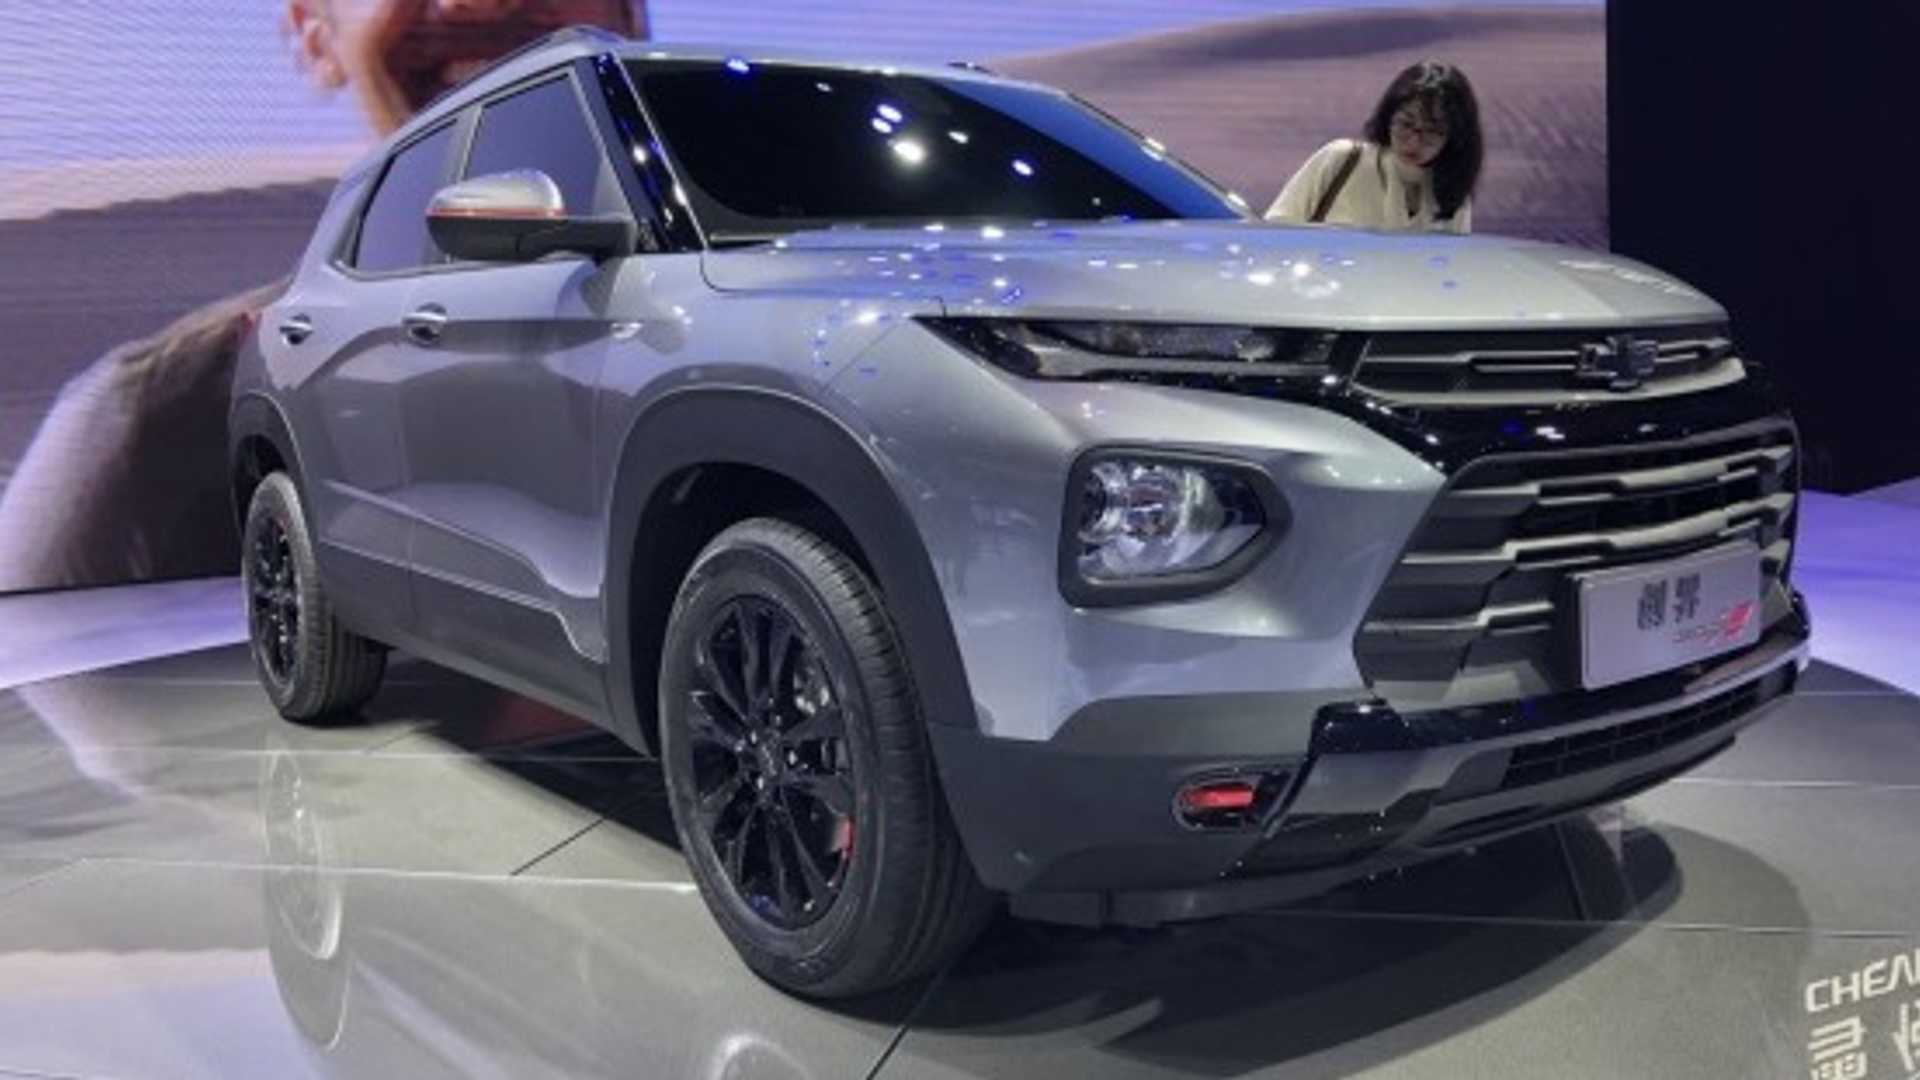 Chevrolet Trailblazer (China)